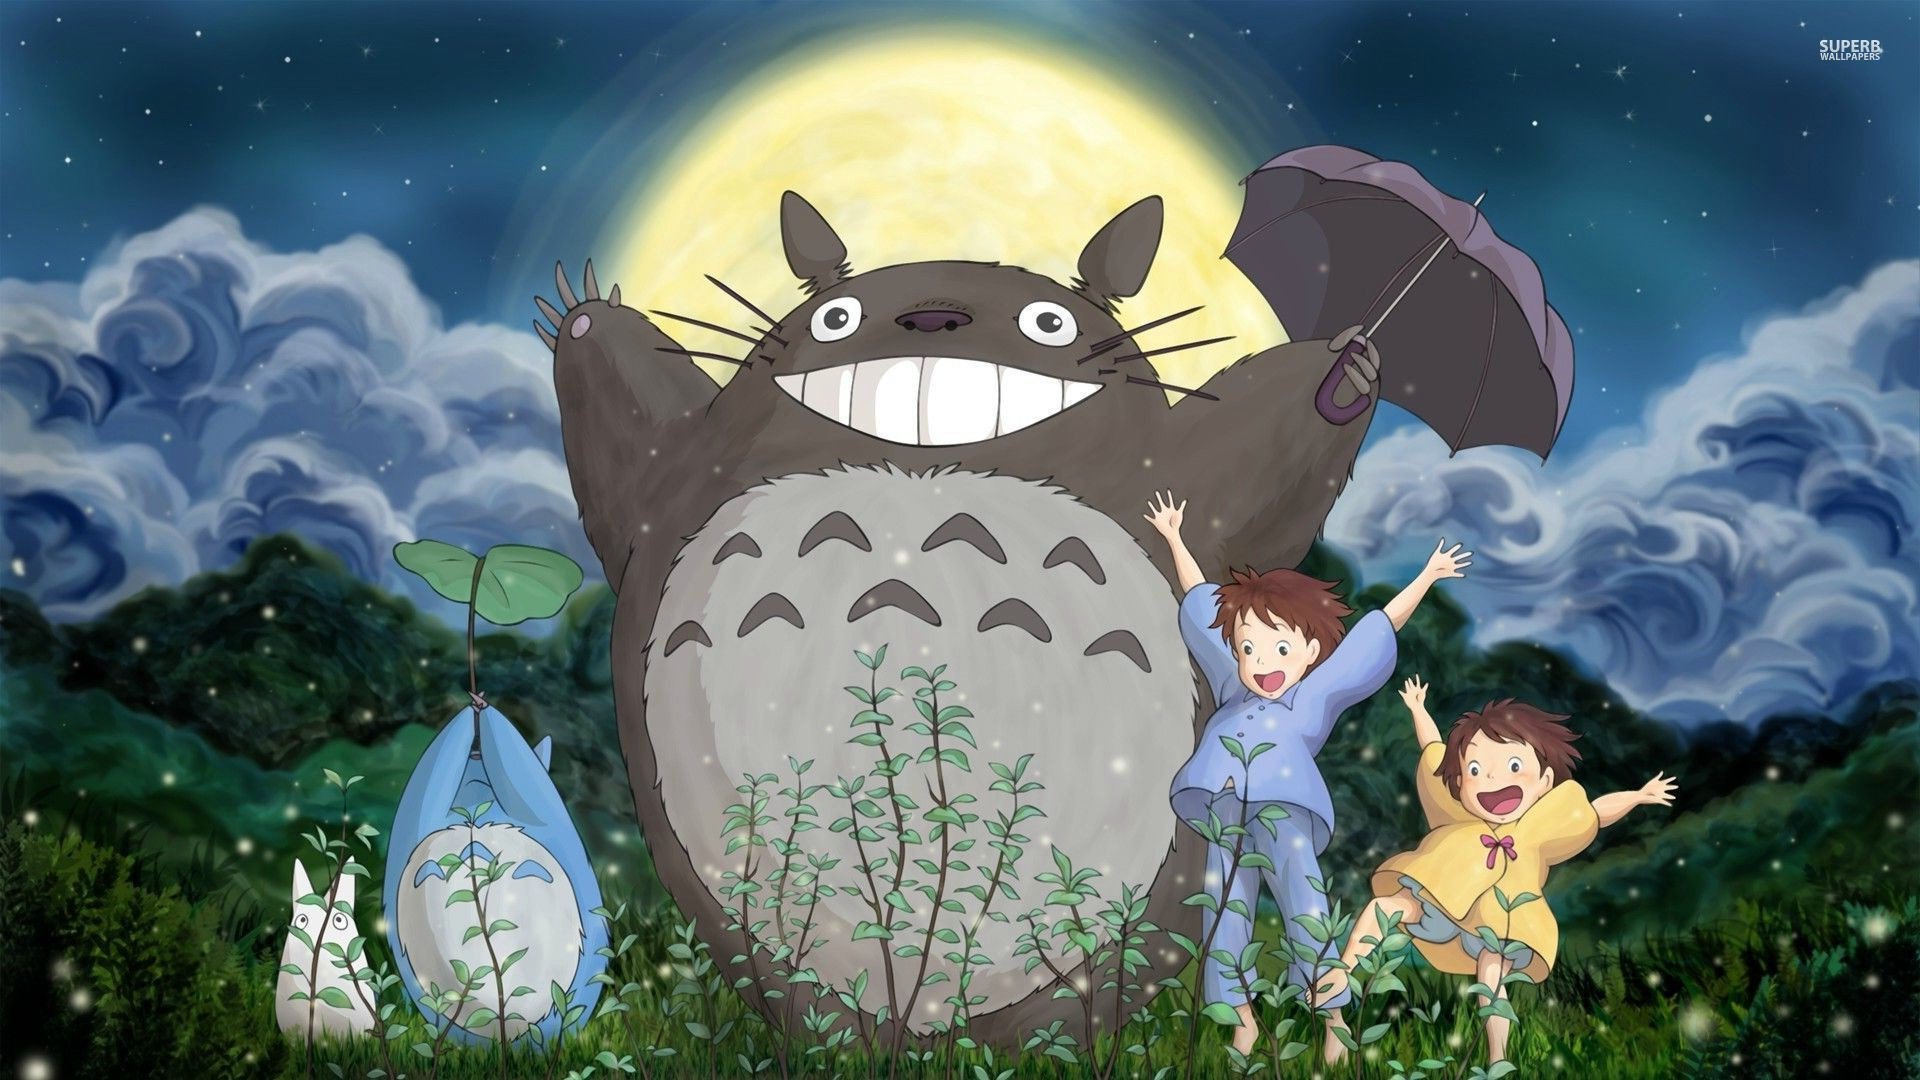 High resolution My Neighbor Totoro full hd 1920x1080 wallpaper ID:259360 for computer